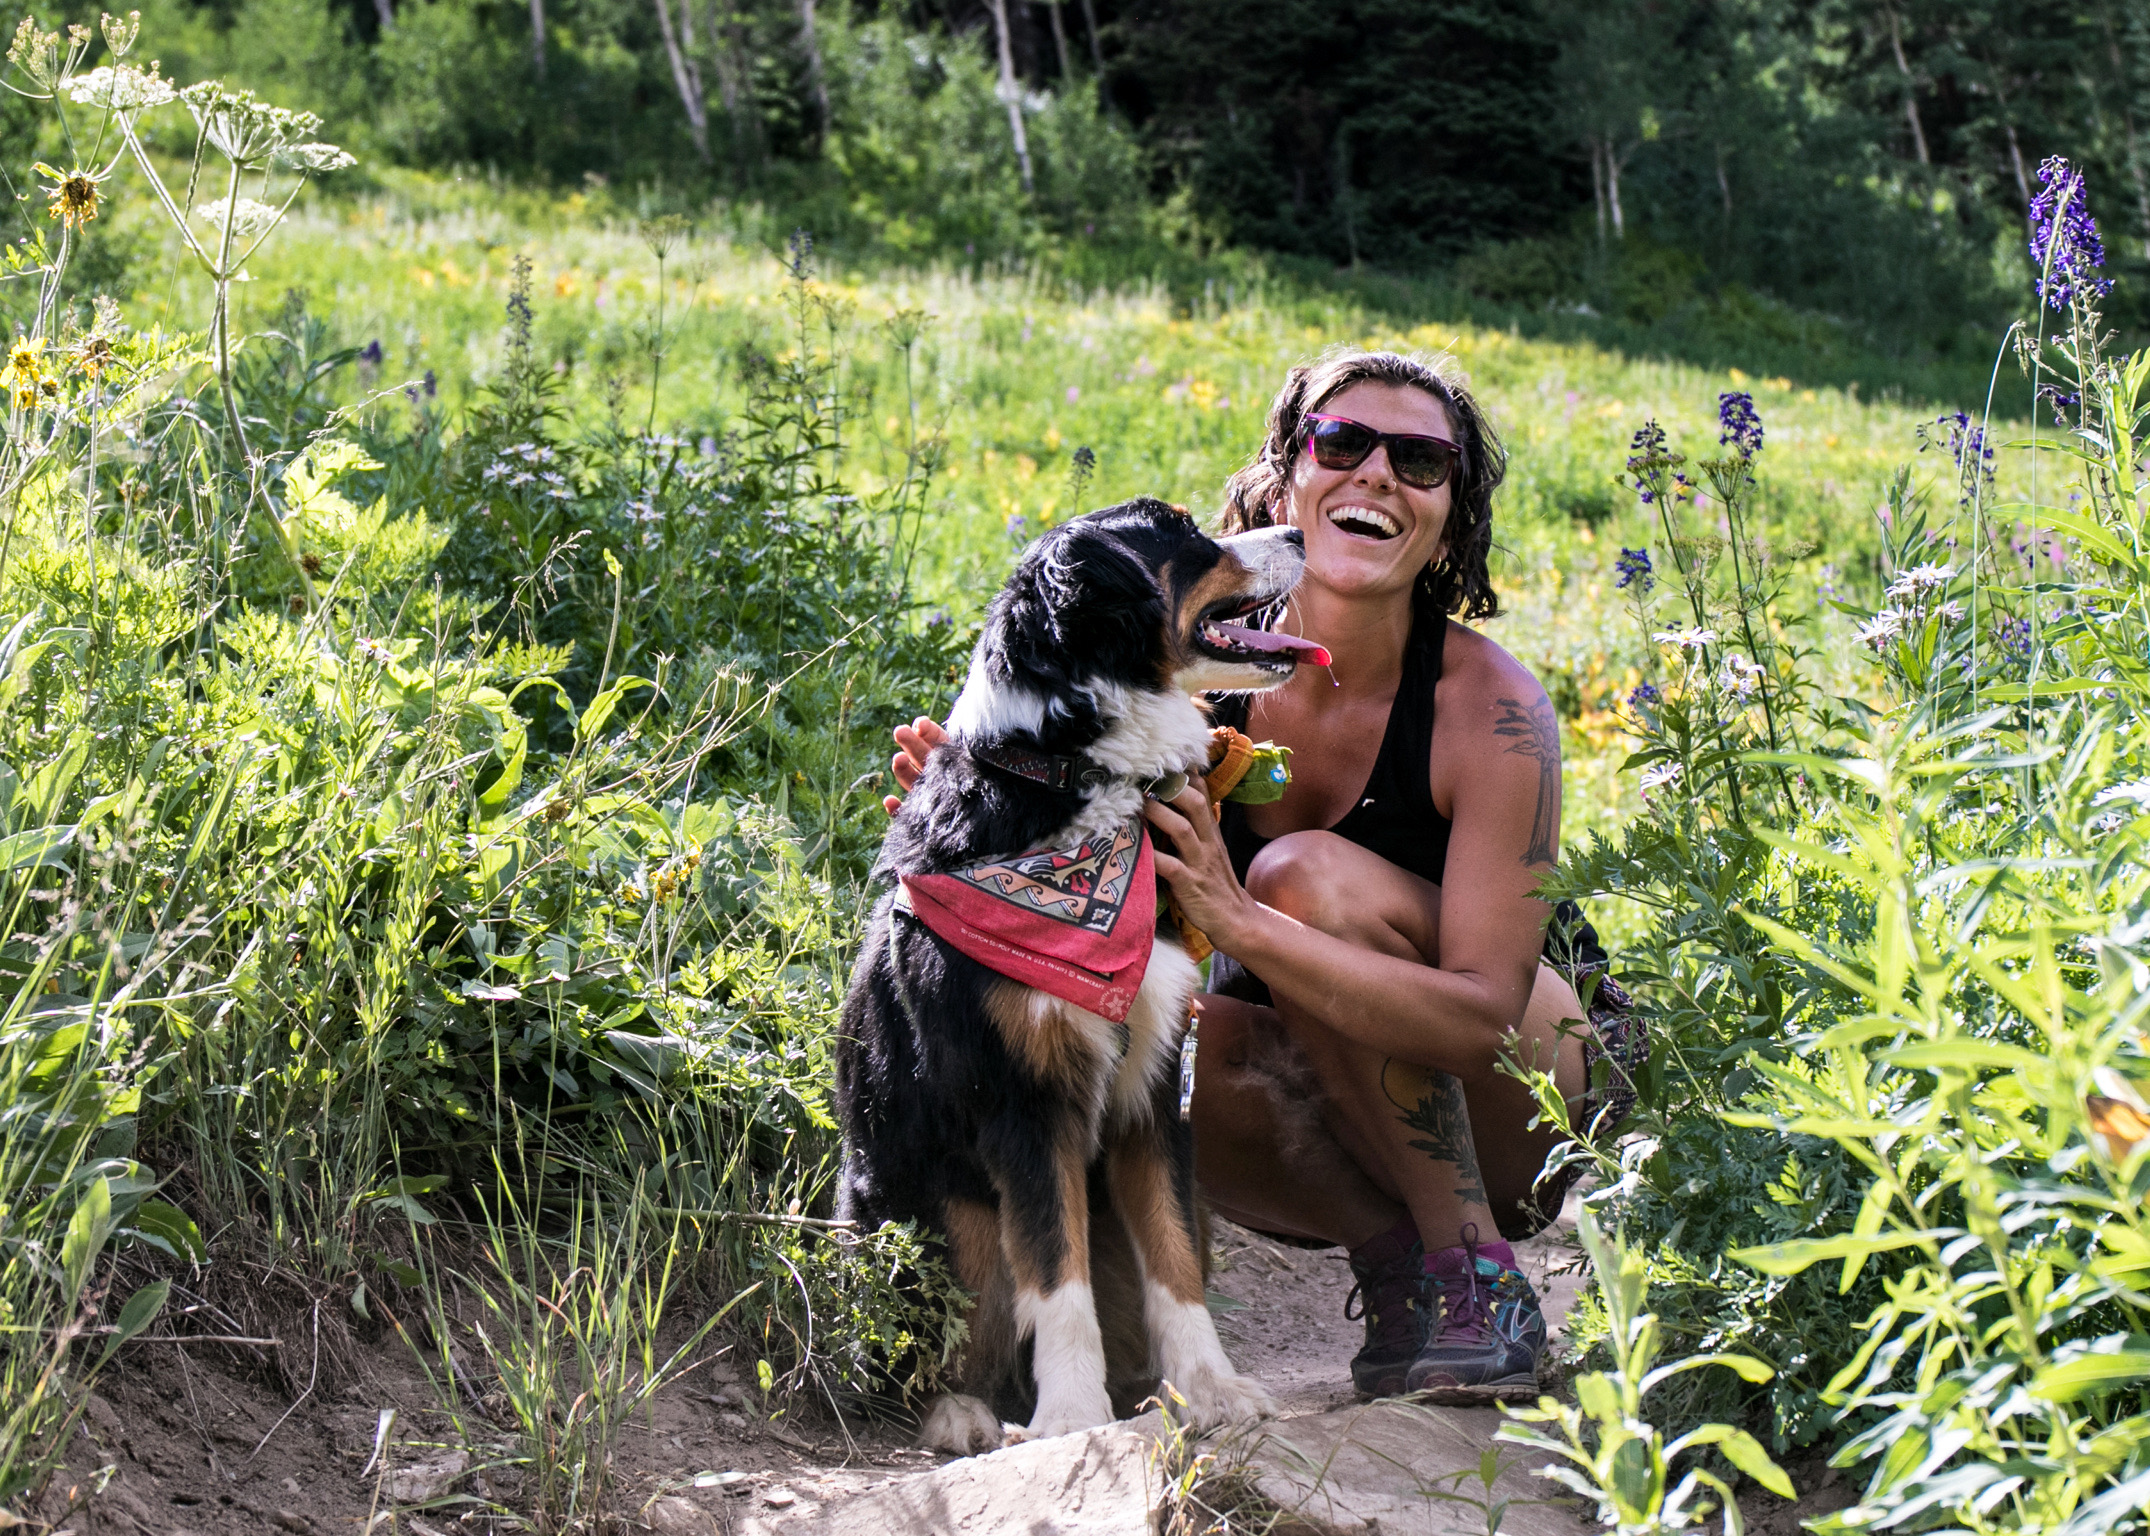 Sara is a partner, hiker, geographer, yoga teacher, and doula in Golden, Colorado.